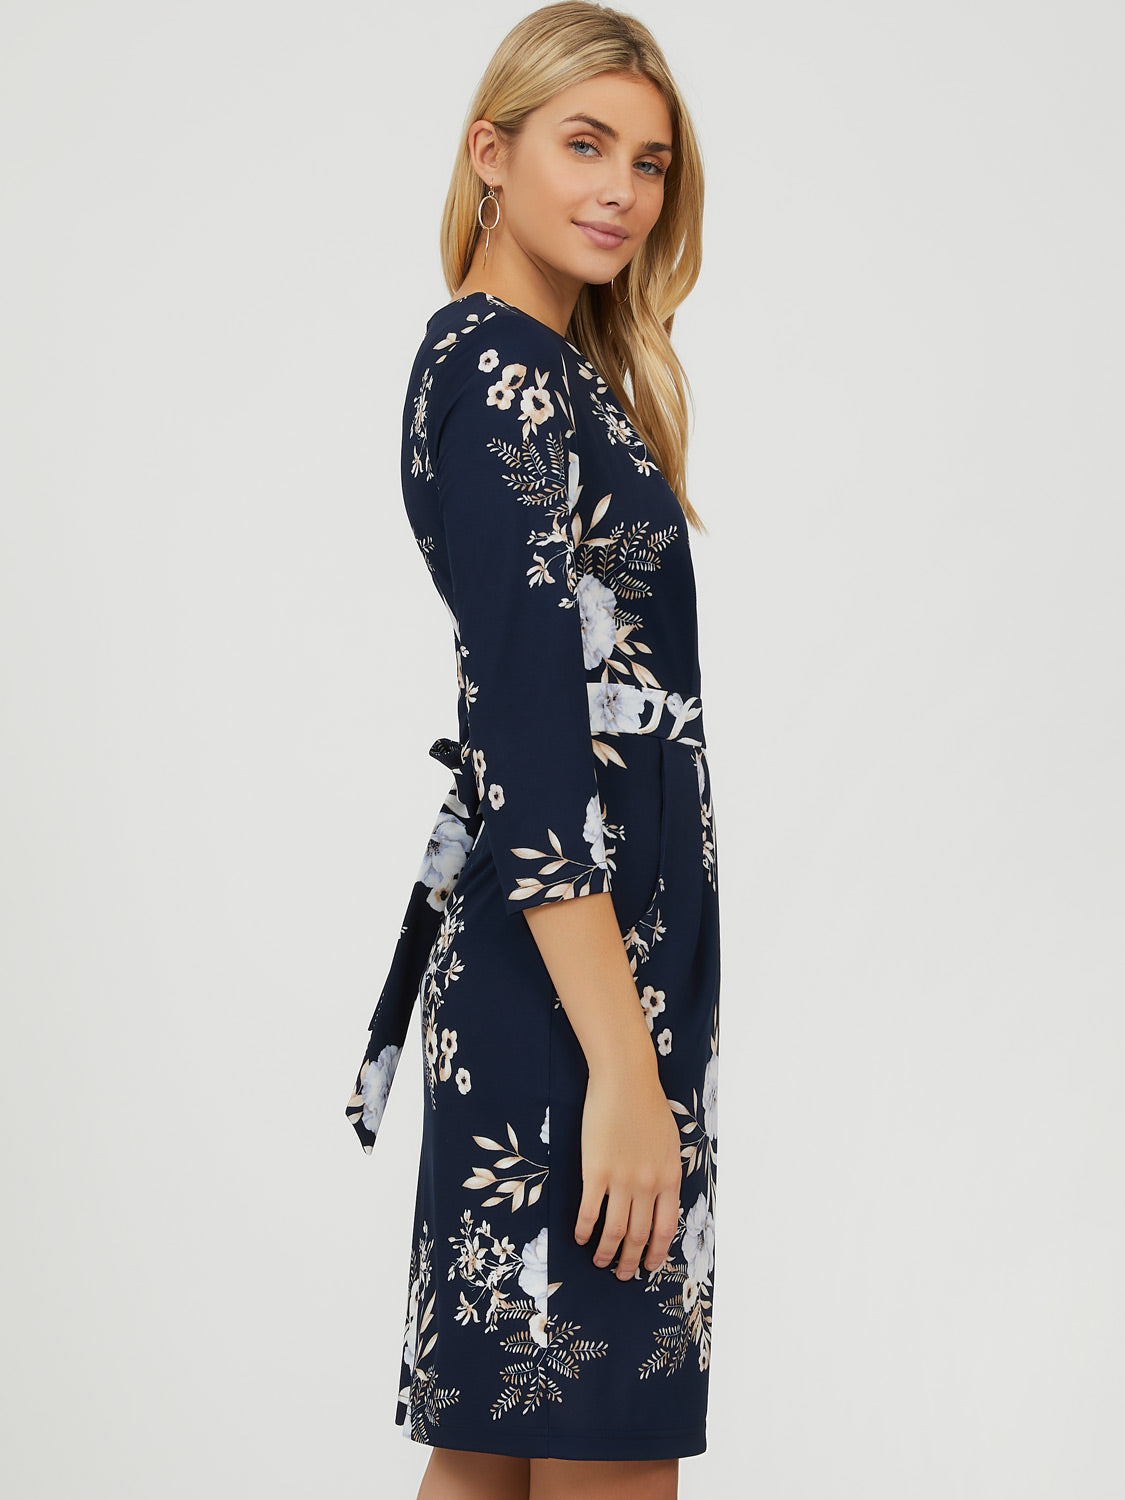 ¾ Sleeve Floral Boat Neck Midi Dress